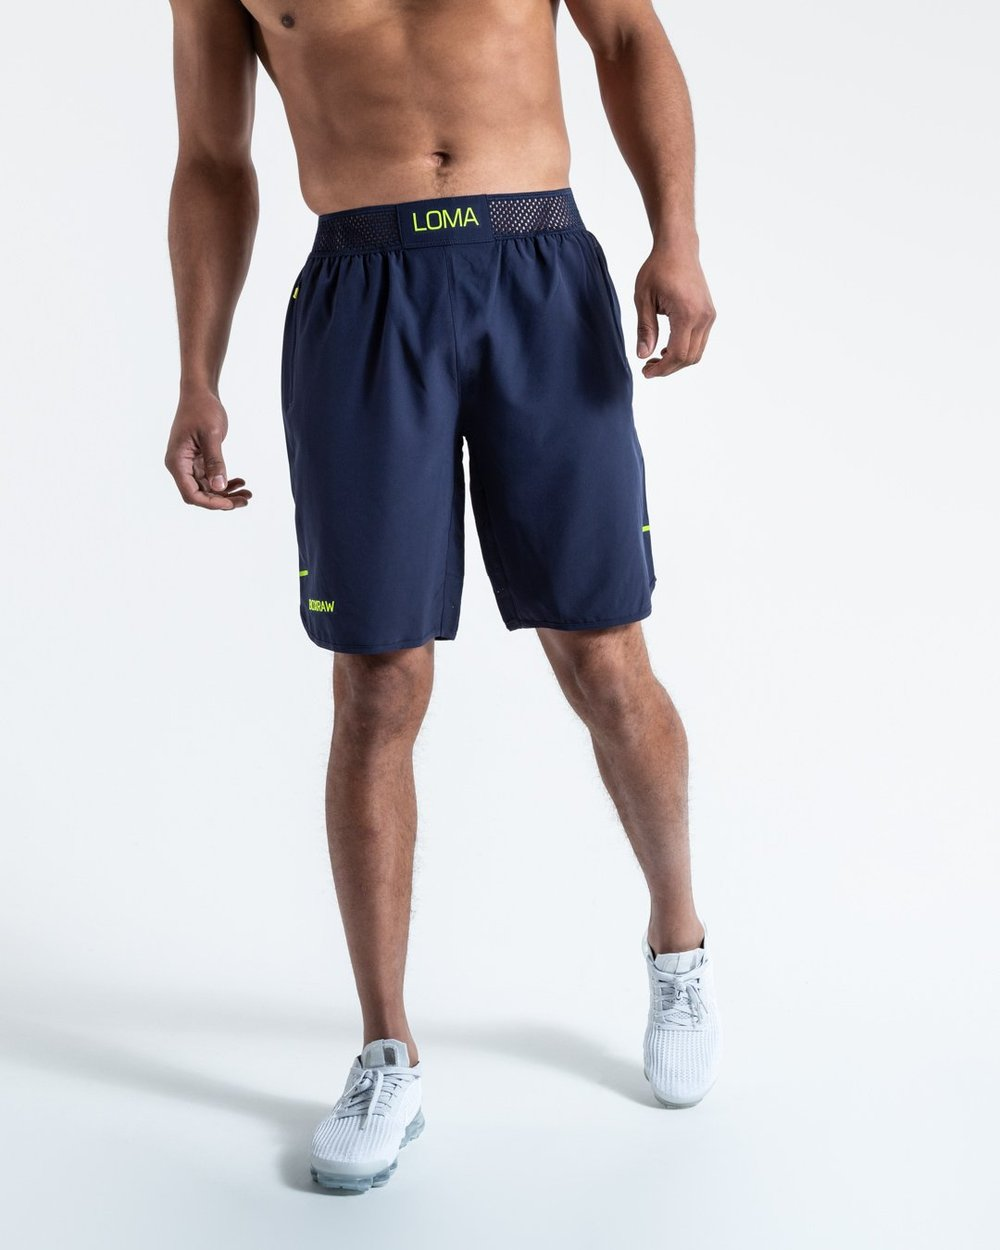 LOMA SHORTS - NAVY - Pandemic Fight Gear Inc.